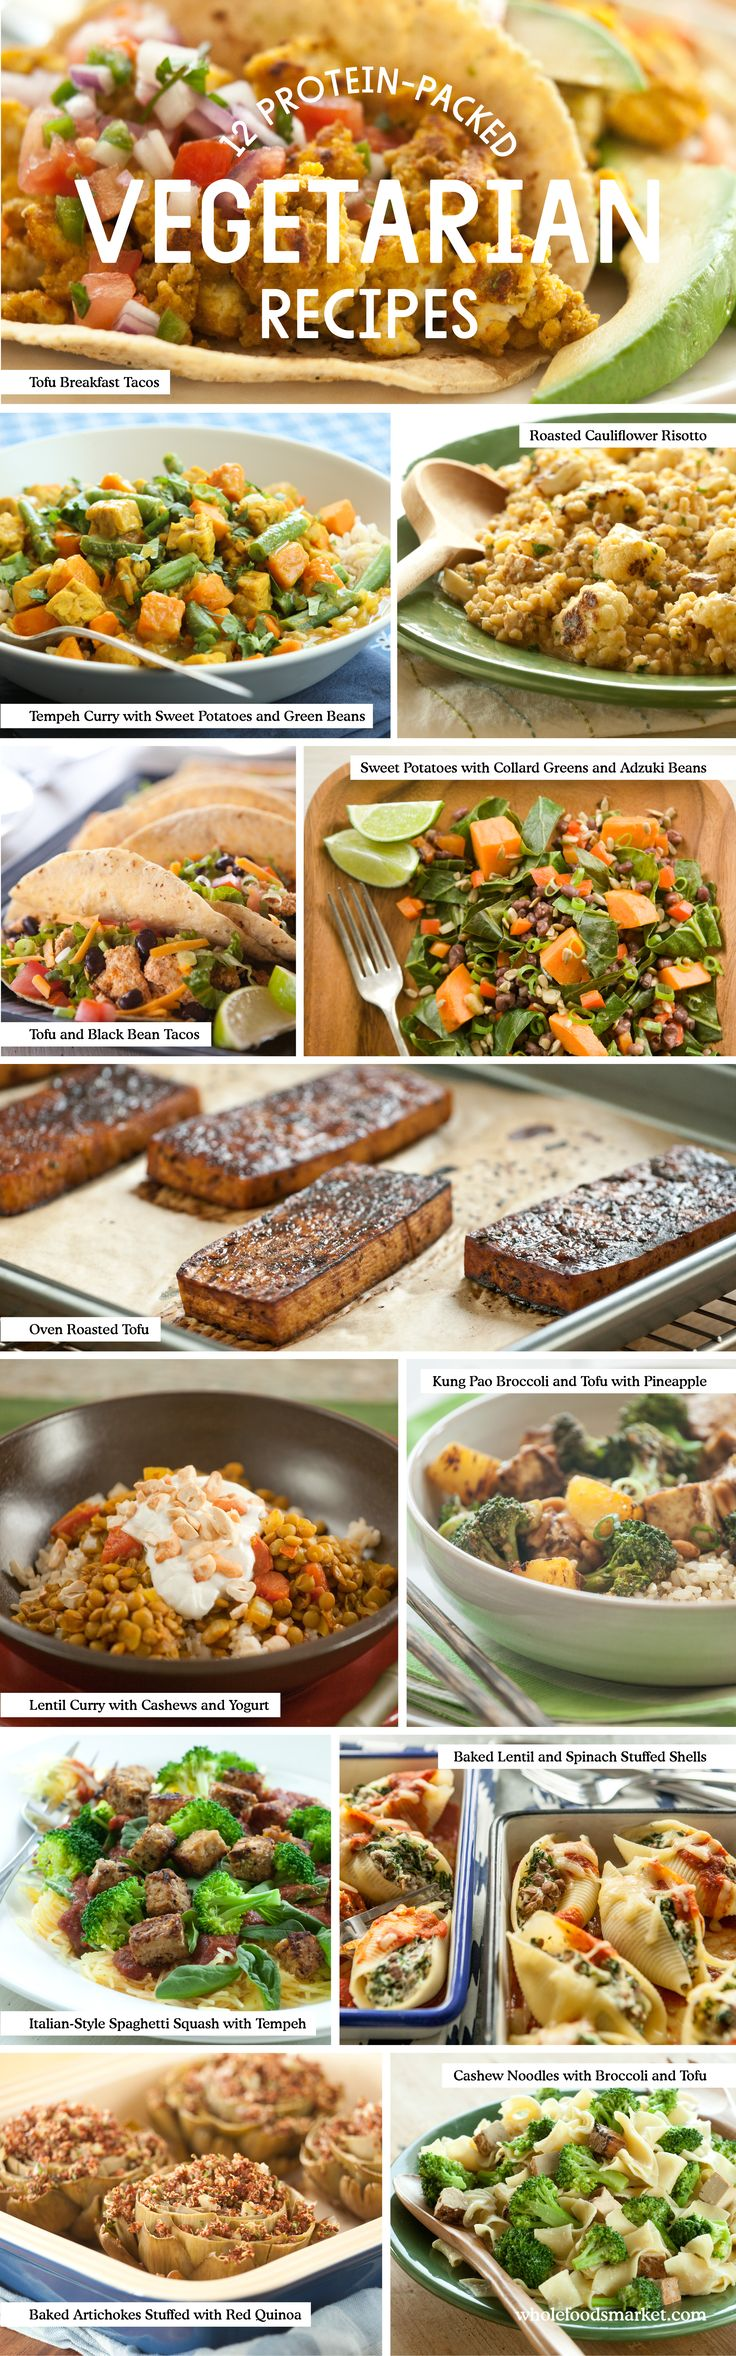 12 Protein-Packed Vegetarian Recipes // Lentil Curry with Cashews and Yogurt // Italian-Style Spaghetti Squash with Tempeh // Cashew Noodles with Broccoli and Tofu // Baked Lentil and Spinach Stuffed Shells // Tofu and Black Bean Tacos // Baked Artichokes Stuffed with Red Quinoa // Tempeh Curry with Sweet Potatoes and Green Beans // Kung Pao Broccoli with Tofu and Pineapple // Oven-Roasted Tofu // Tofu Breakfast Tacos